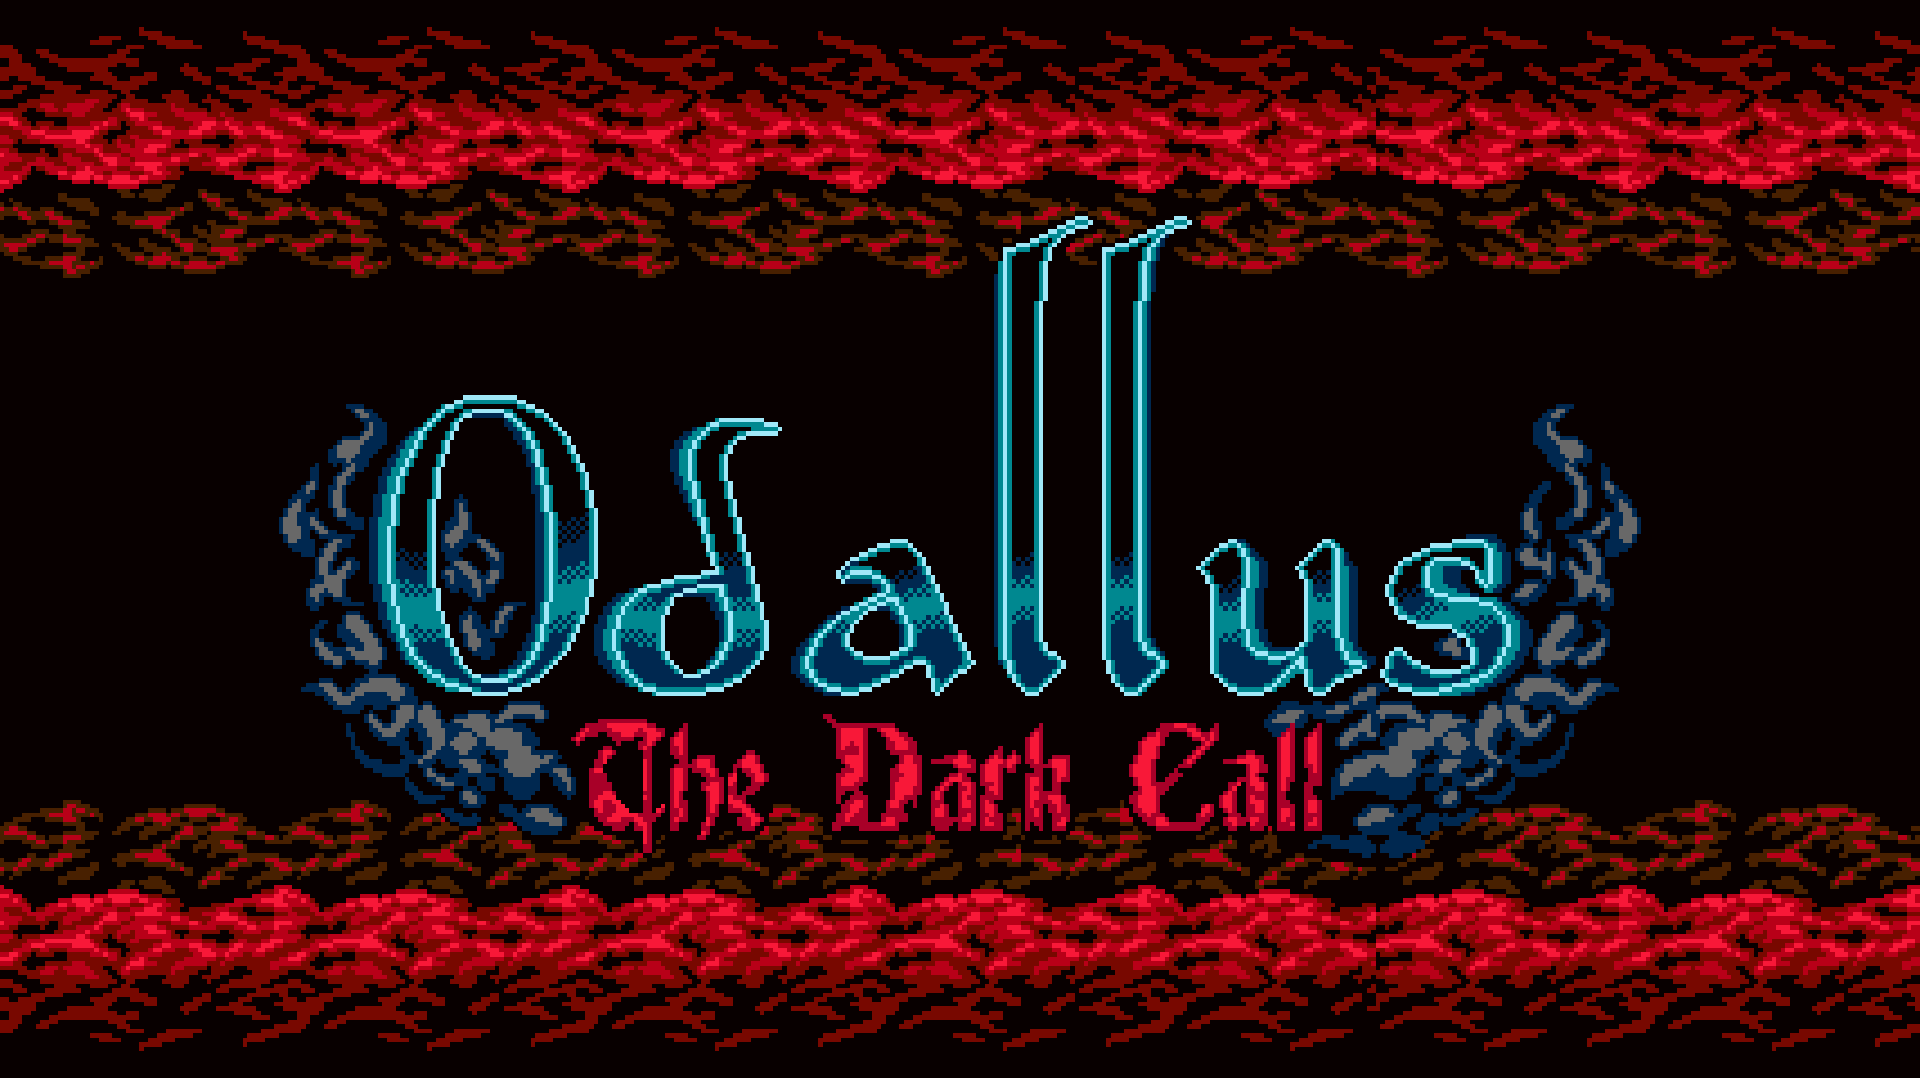 https://www.indiemag.fr/sites/default/files/jeux/o/odallus-dark-call/galerie/galerie-odallus-dark-call.png